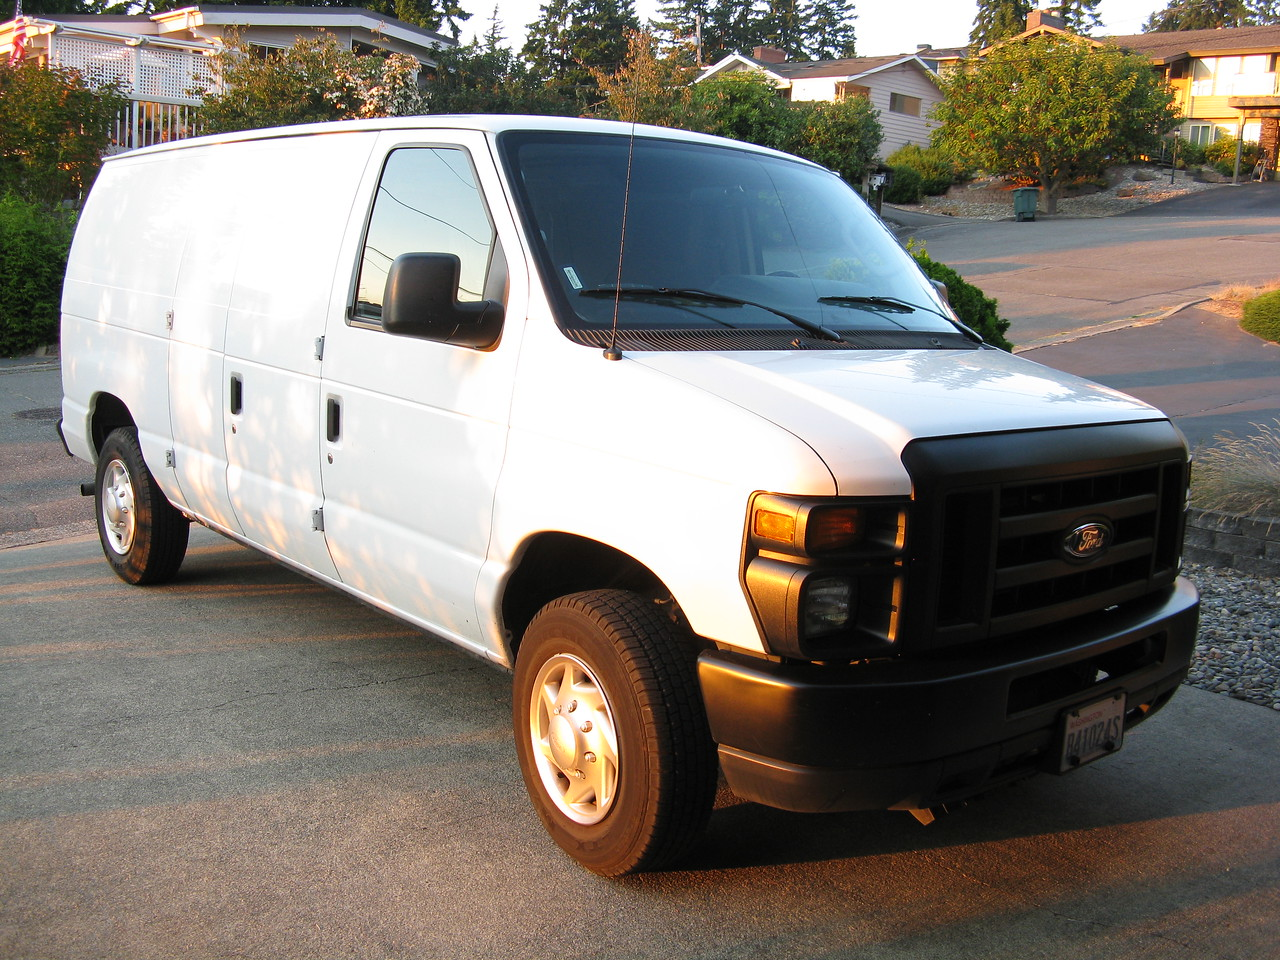 We rented this full-size cargo van for the haul to Moses Lake.